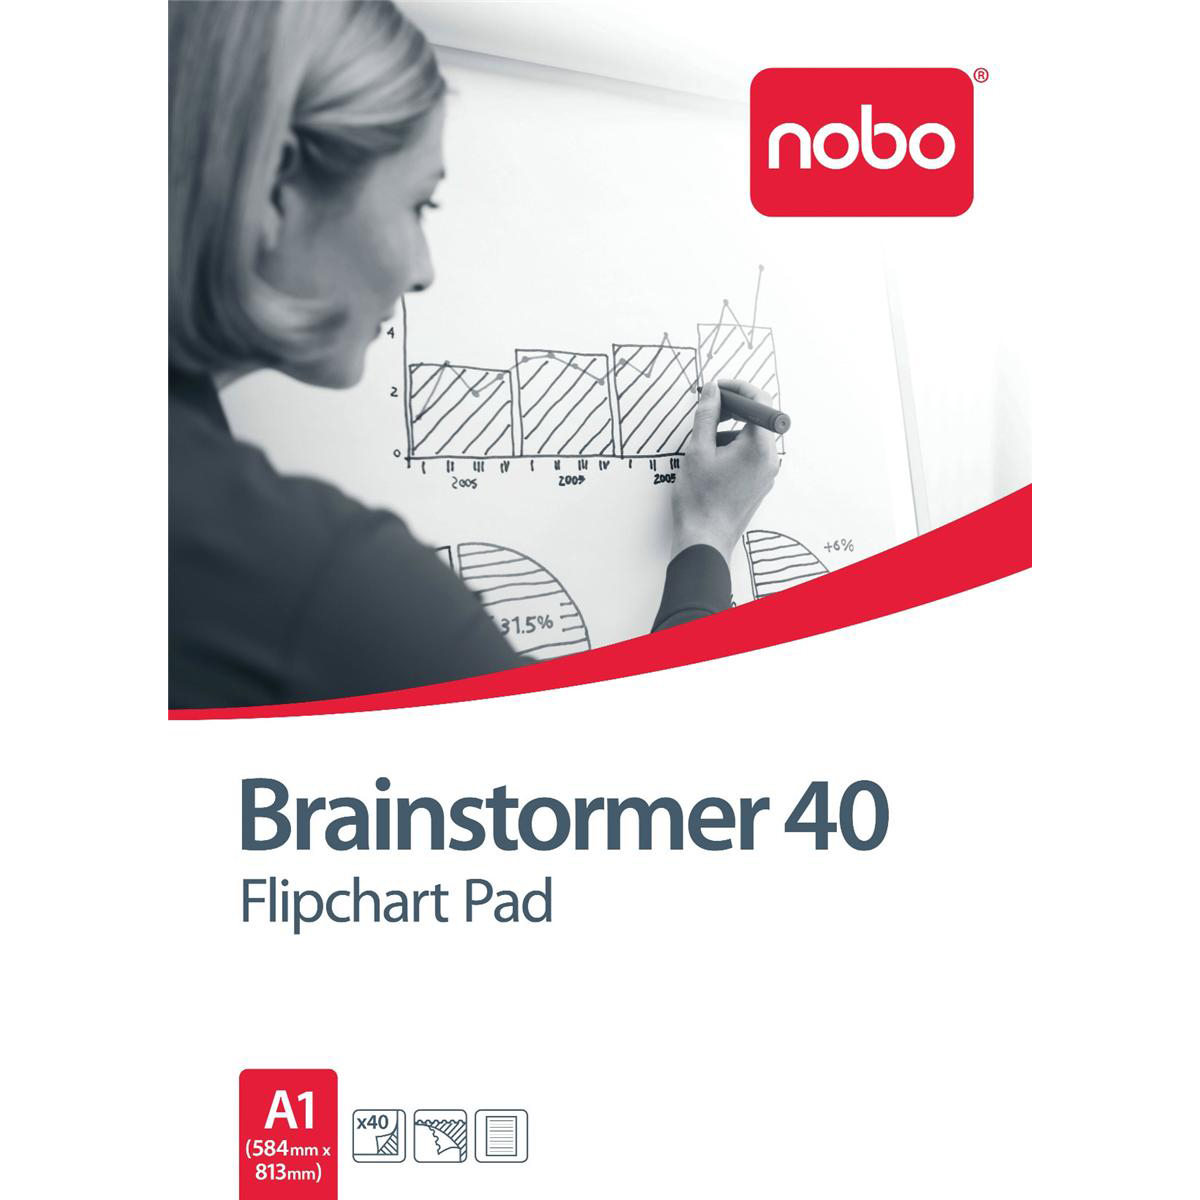 Nobo Brainstormer Flipchart Pad Perforated 40 Sheets 70gsm A1 Ruled Line Ref 34633719 Pack 5